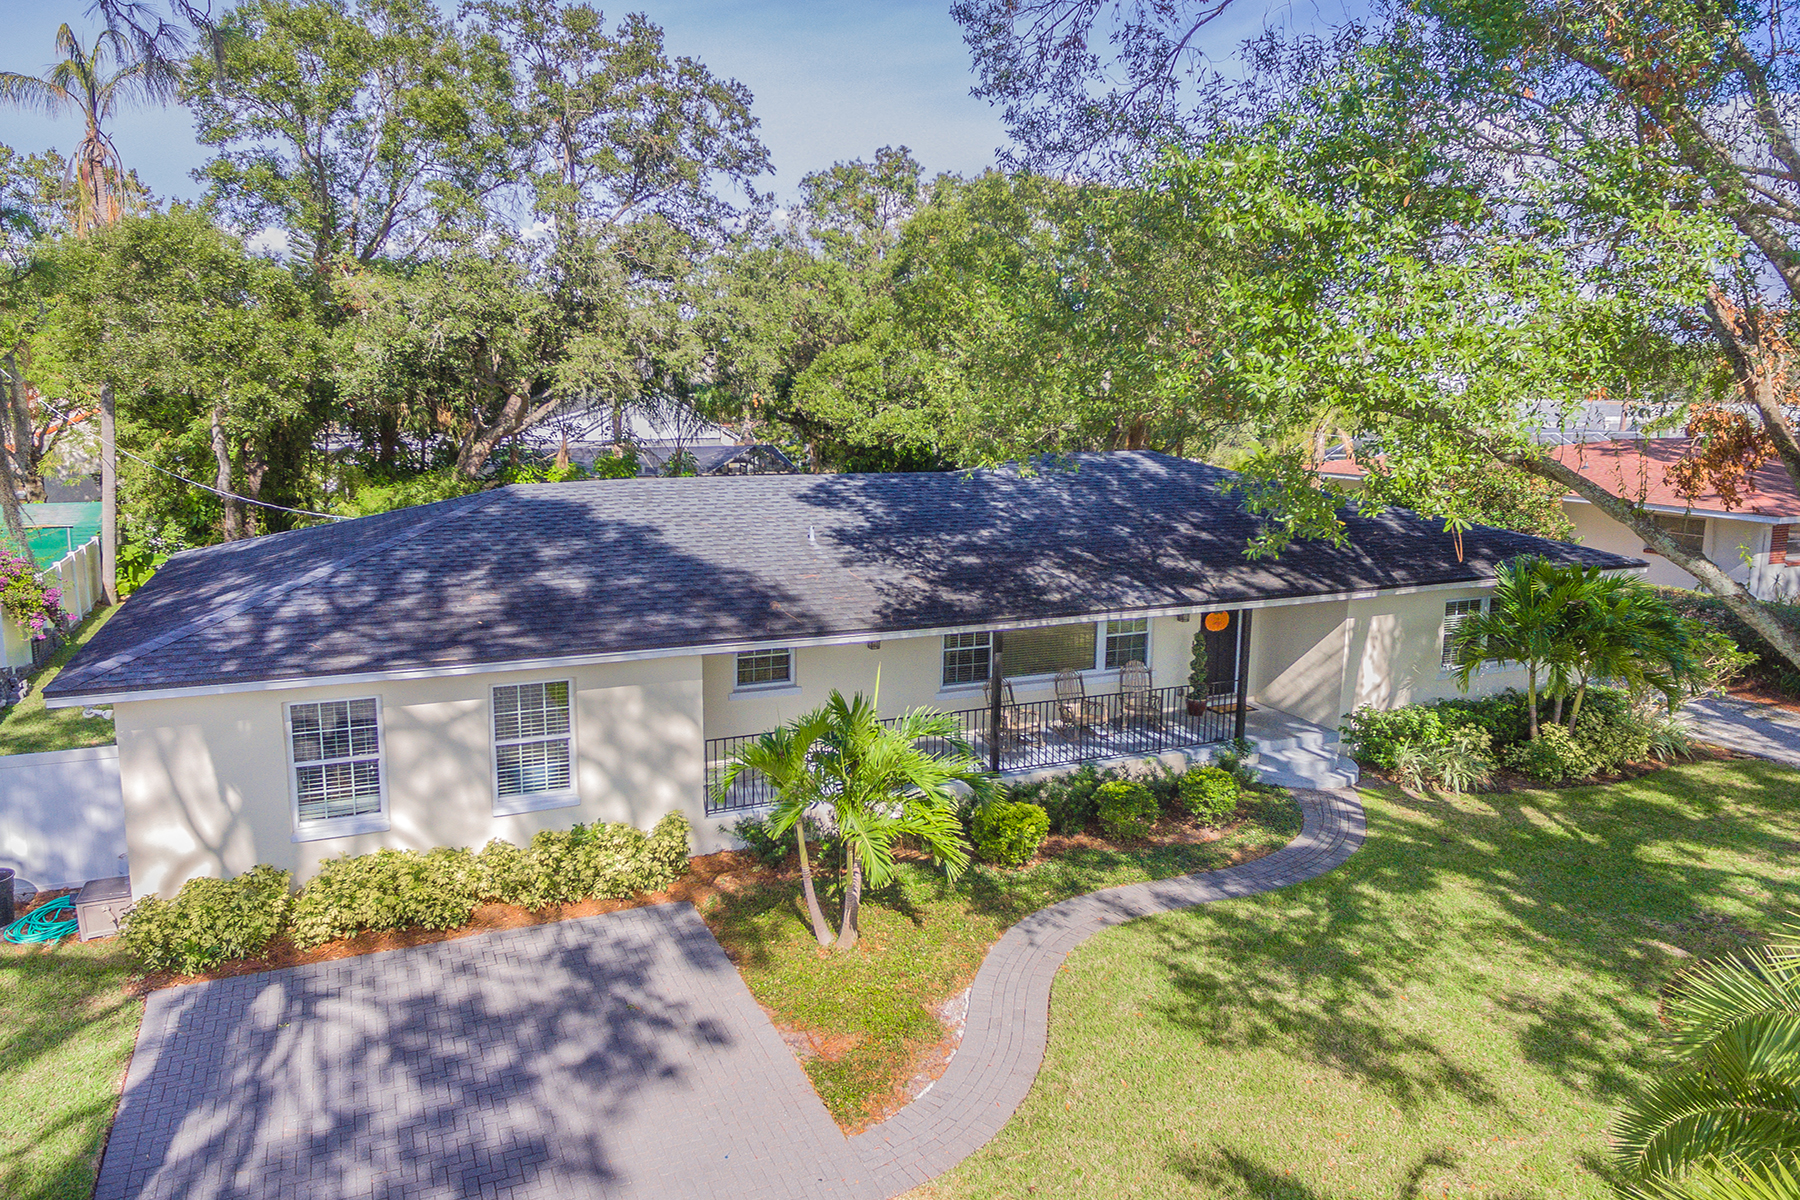 Single Family Home for Sale at SOUTH TAMPA 5007 W Leona St, Tampa, Florida, 33629 United States